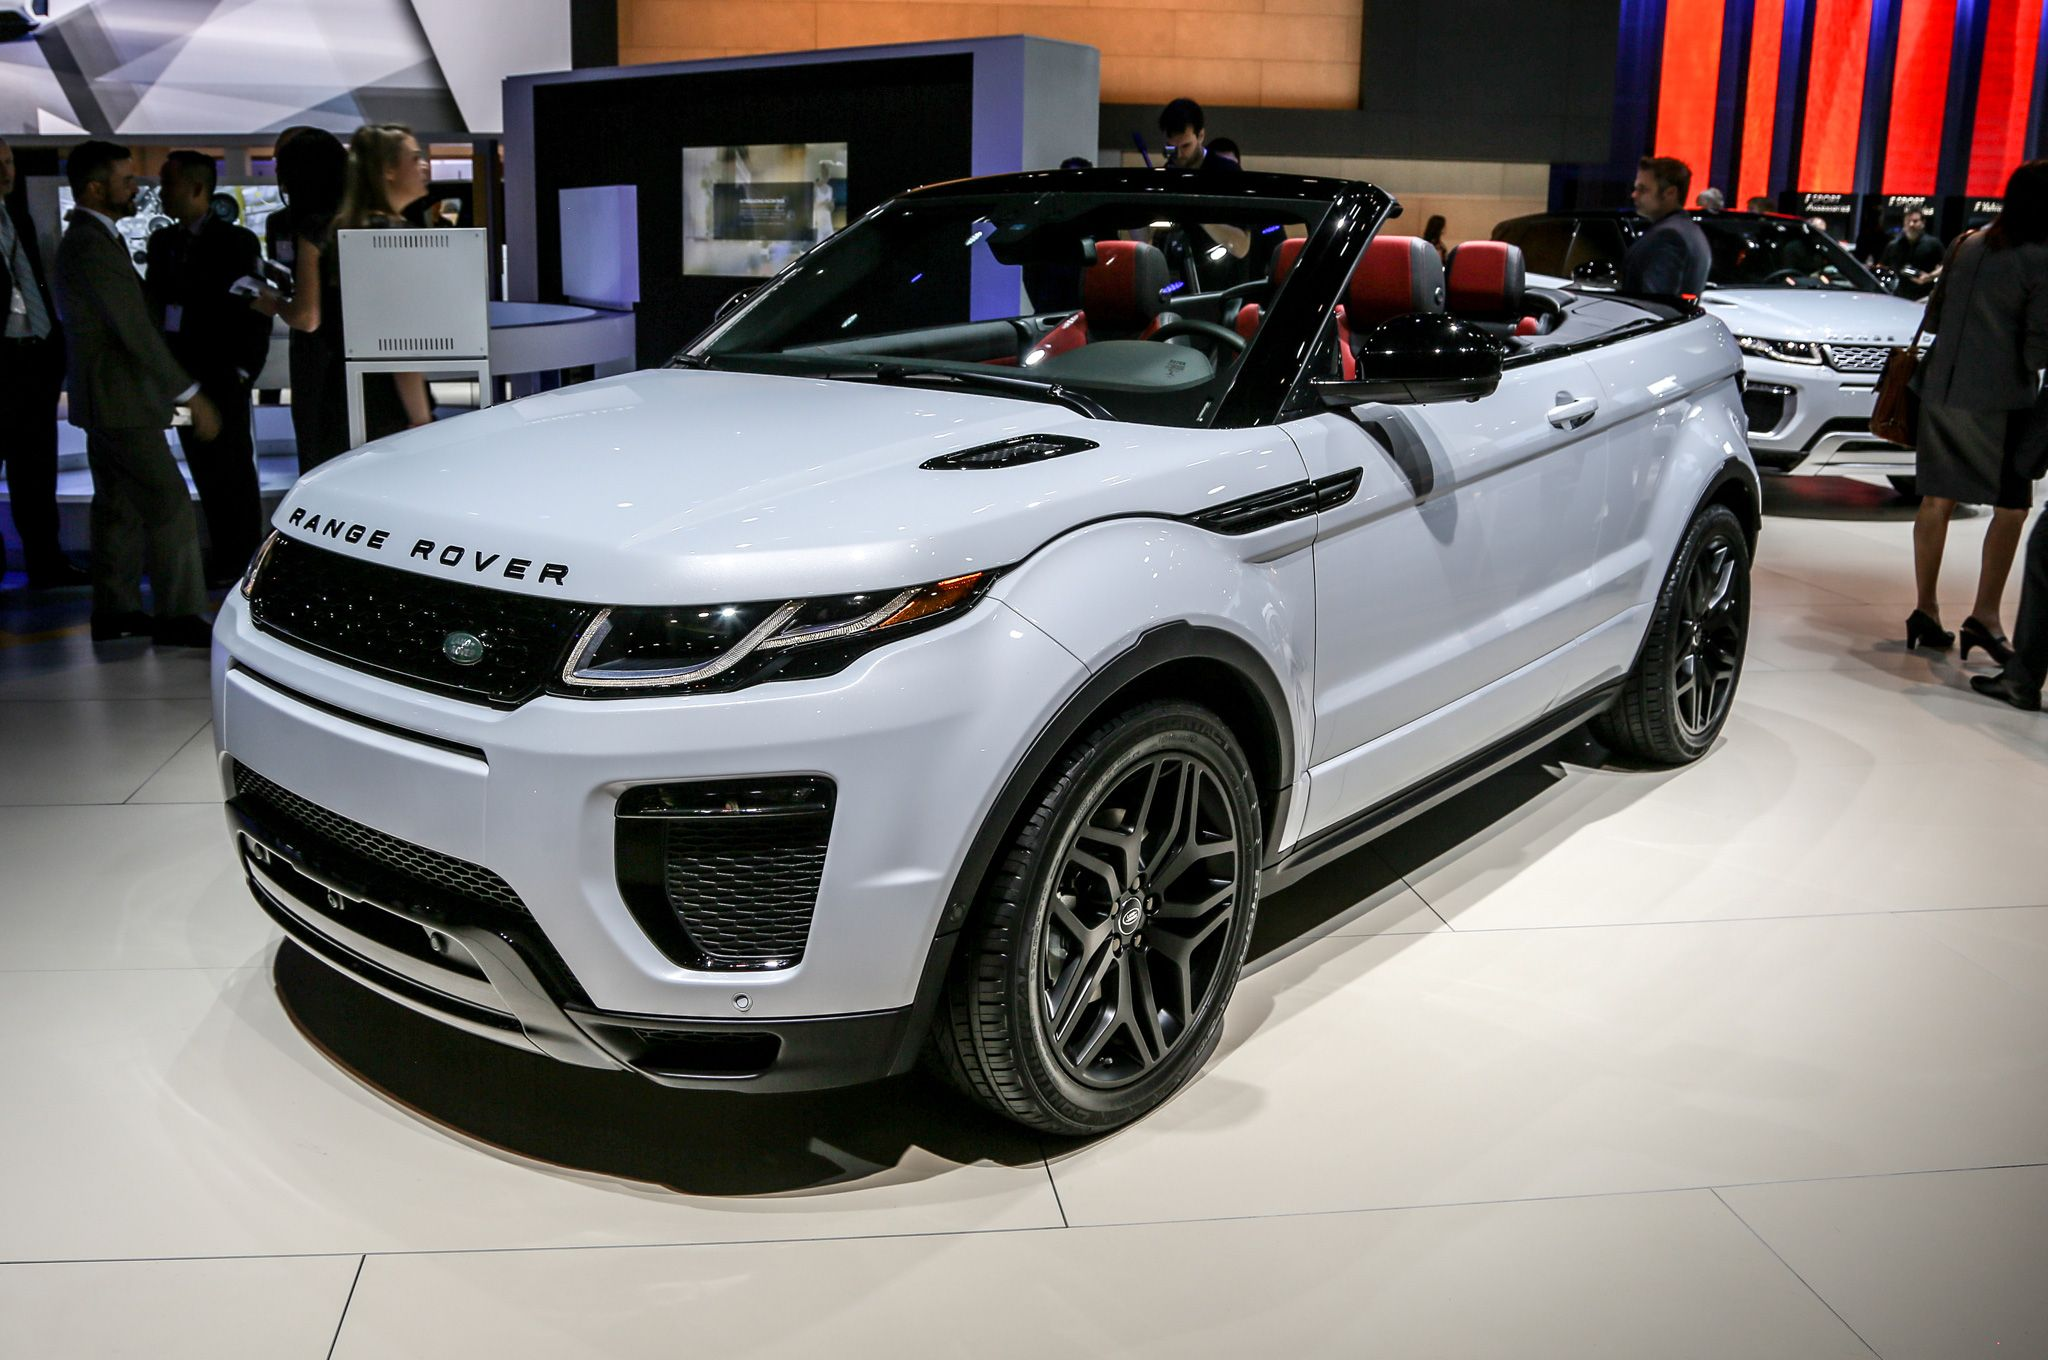 The 2017 Range Rover Evoque convertible made an appearance at the